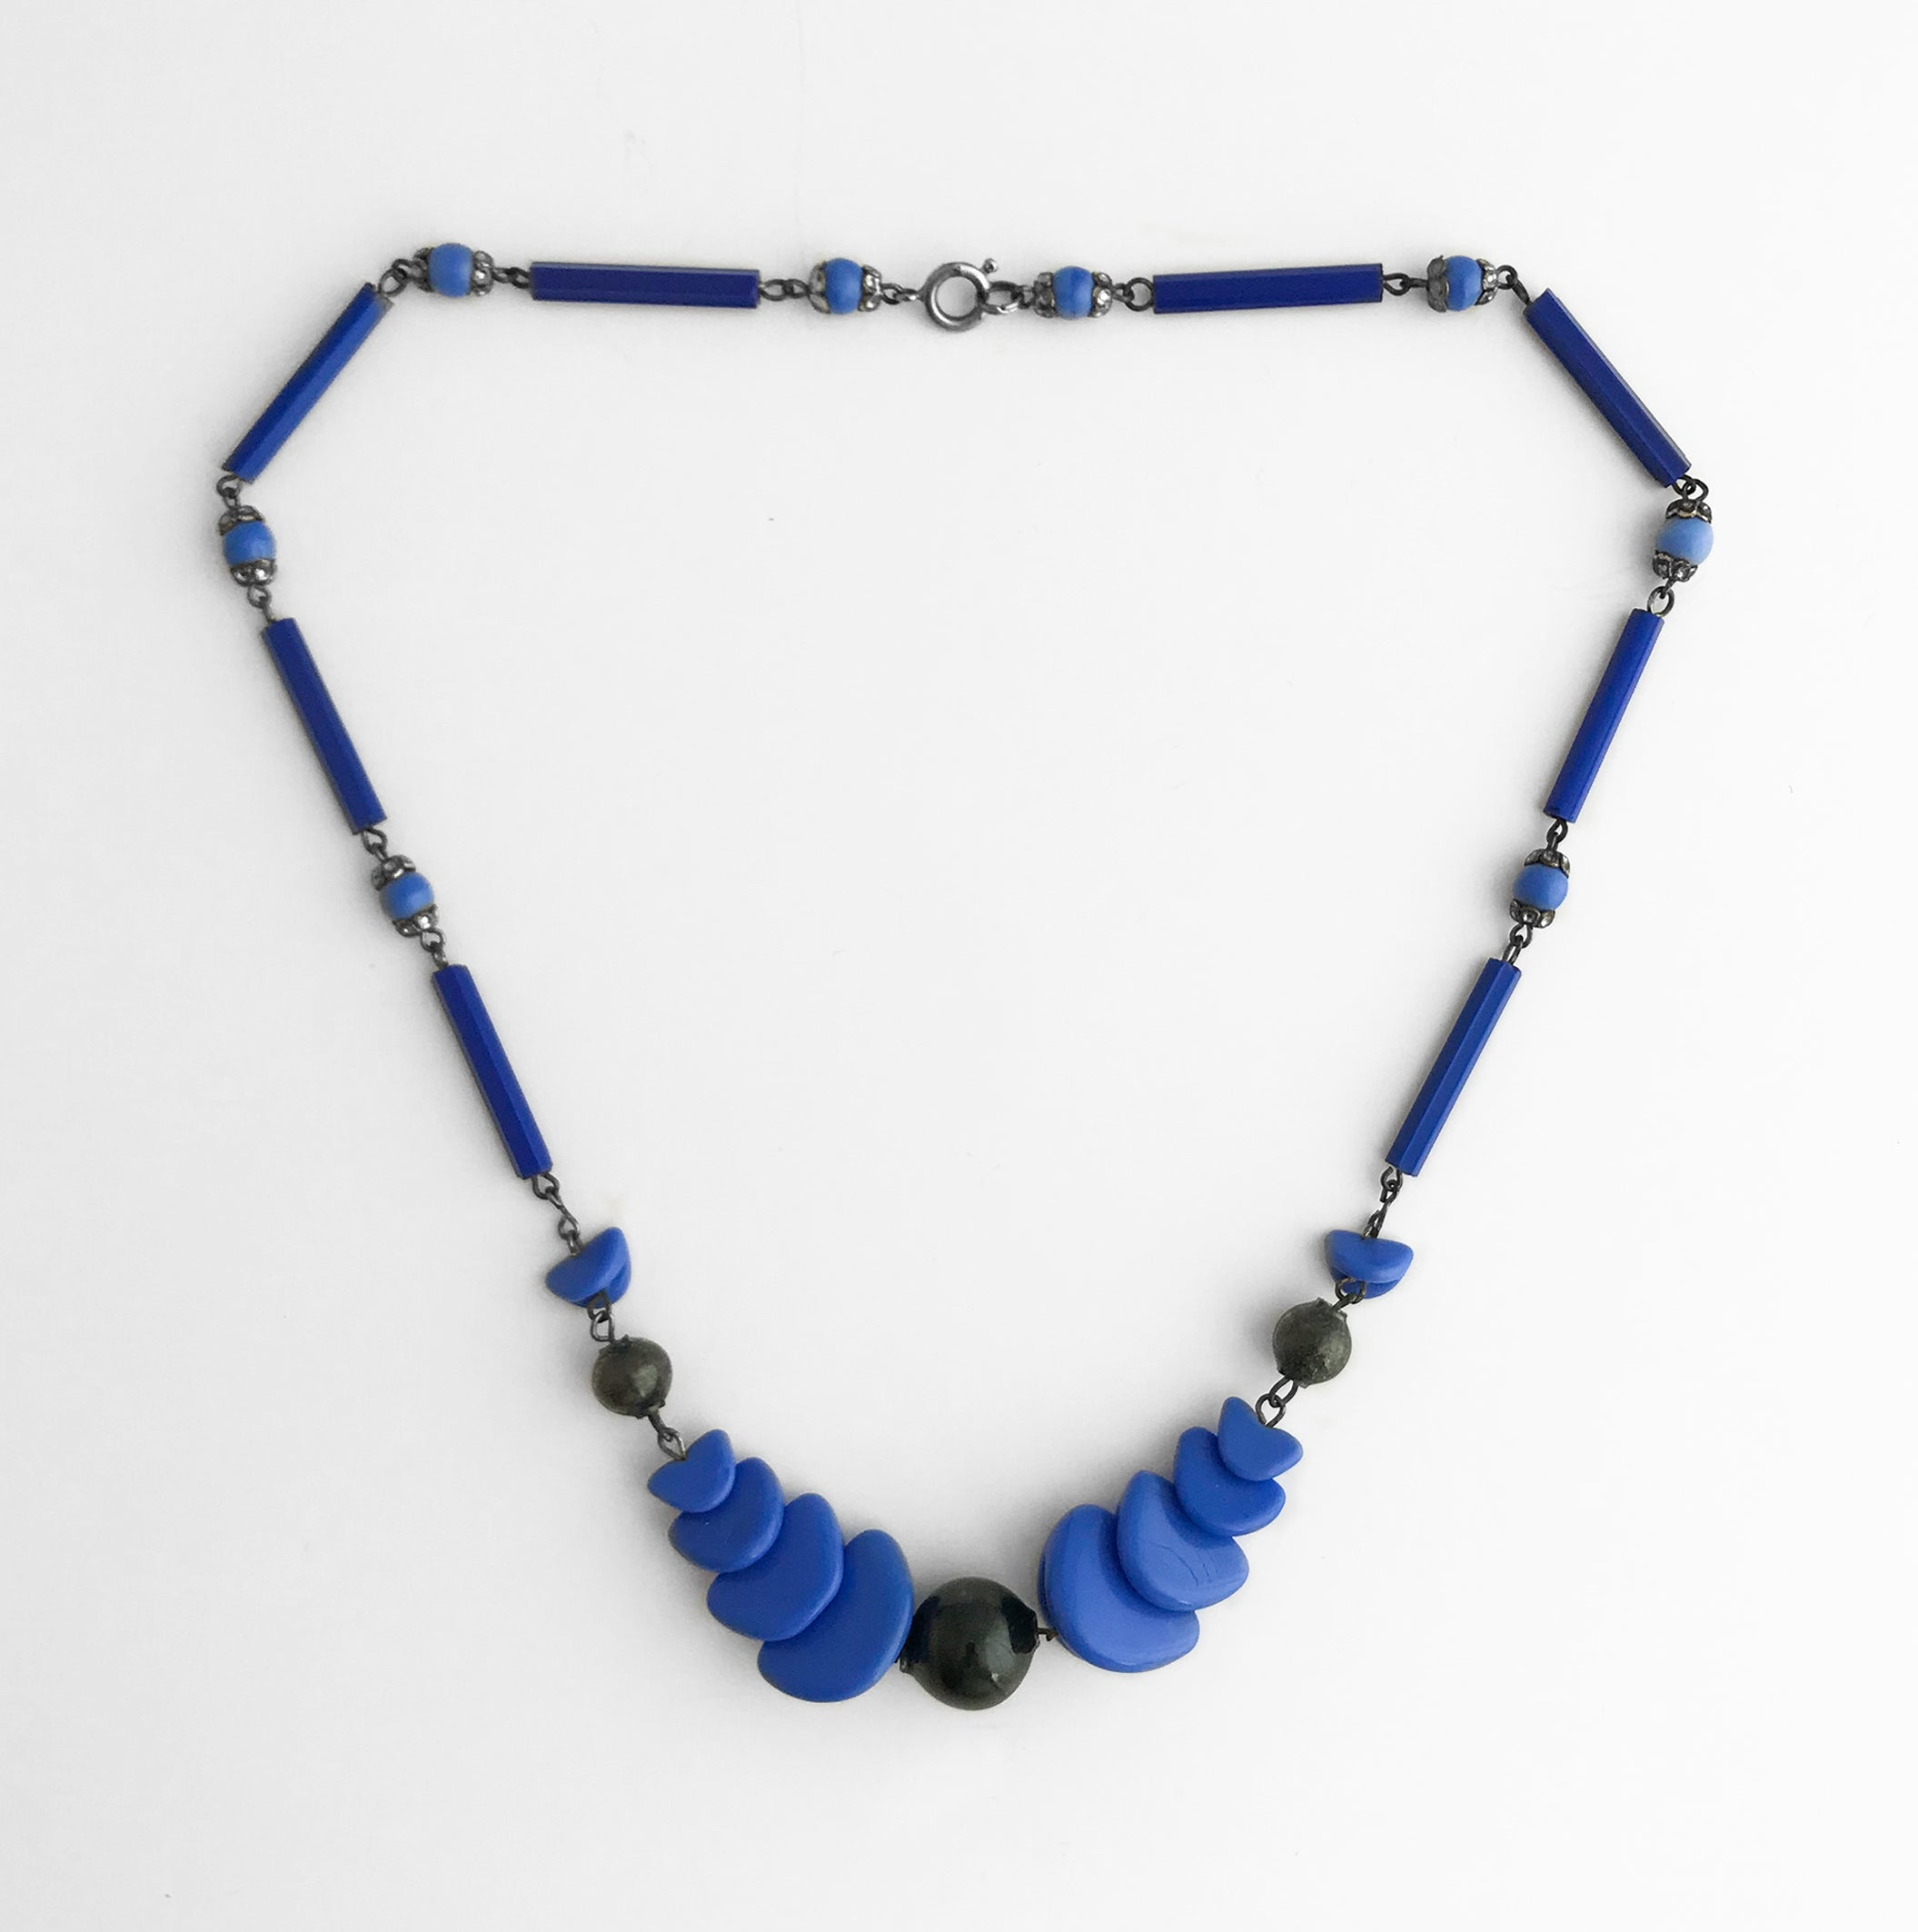 Vintage Blue and Black Geo-Metric Art Deco Necklace - SHOP NOW - www.intovintage.co.uk